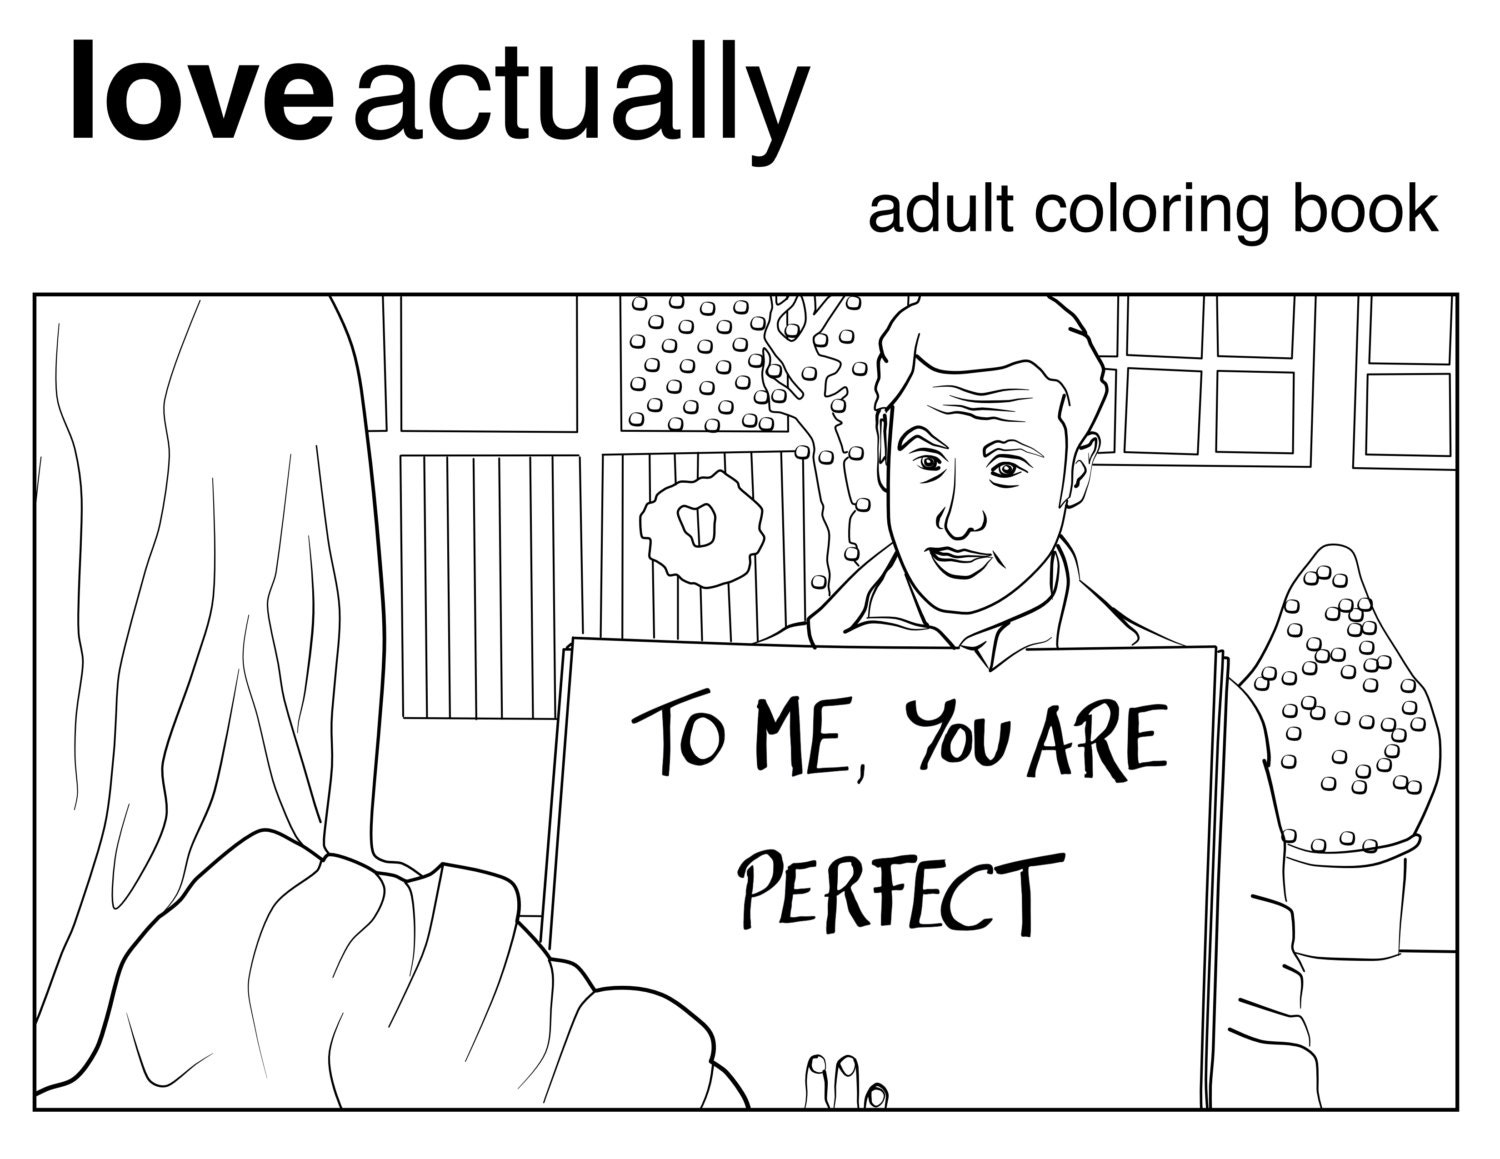 Coloring book download zip - Love Actually Coloring Book Printable Download For Adults Christmas Movie Romantic Comedy